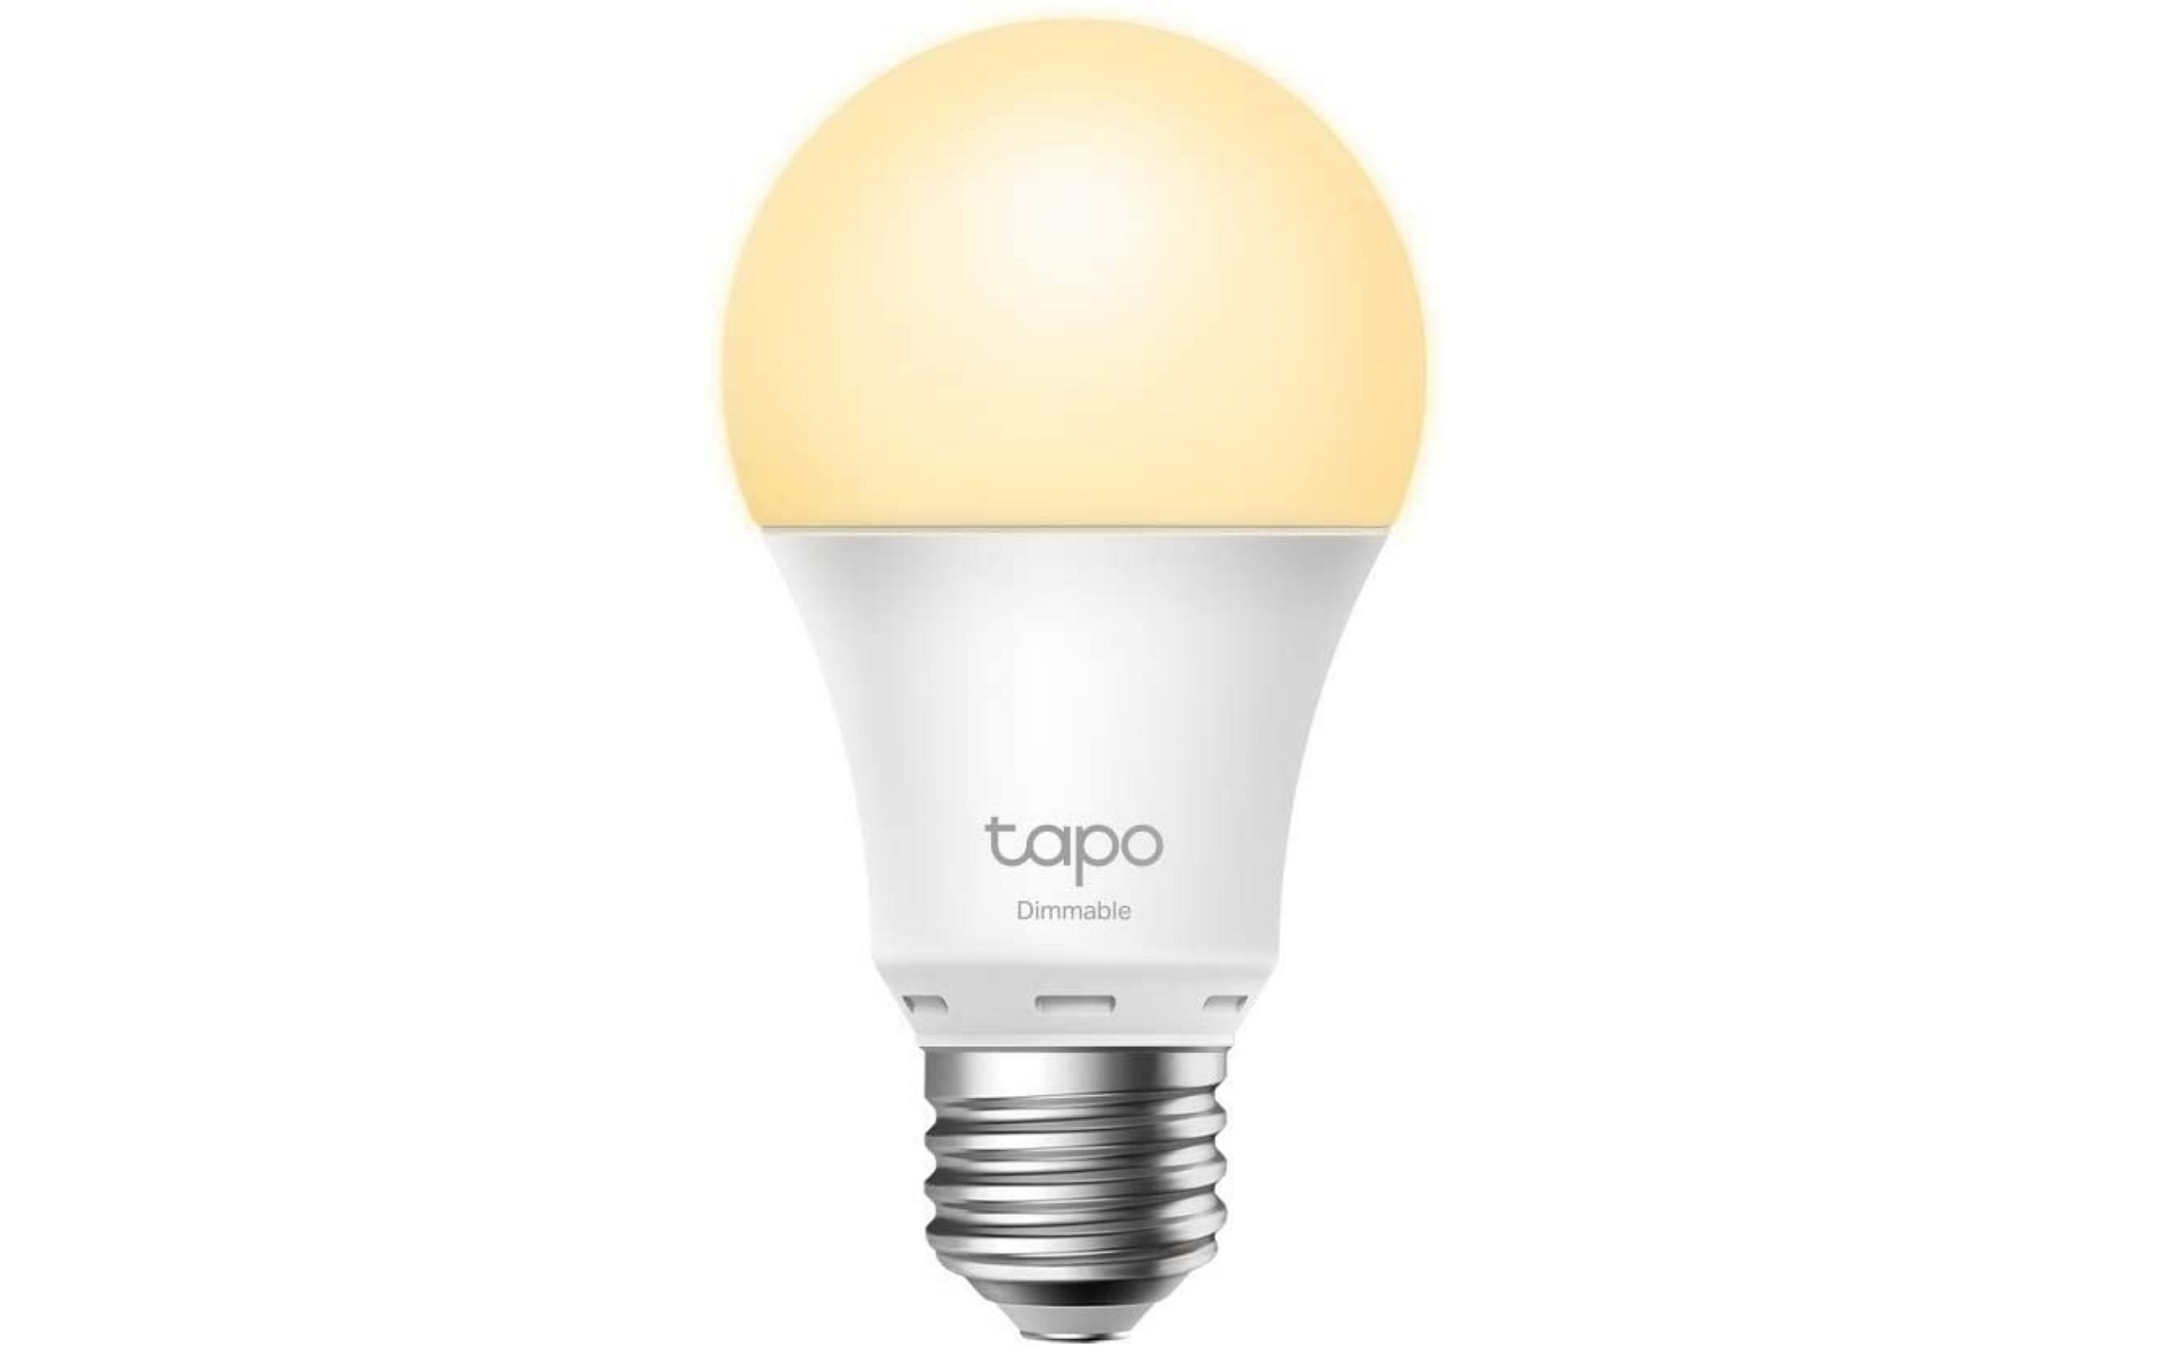 TP-Link Smart Bulb for less than 10 € on Amazon